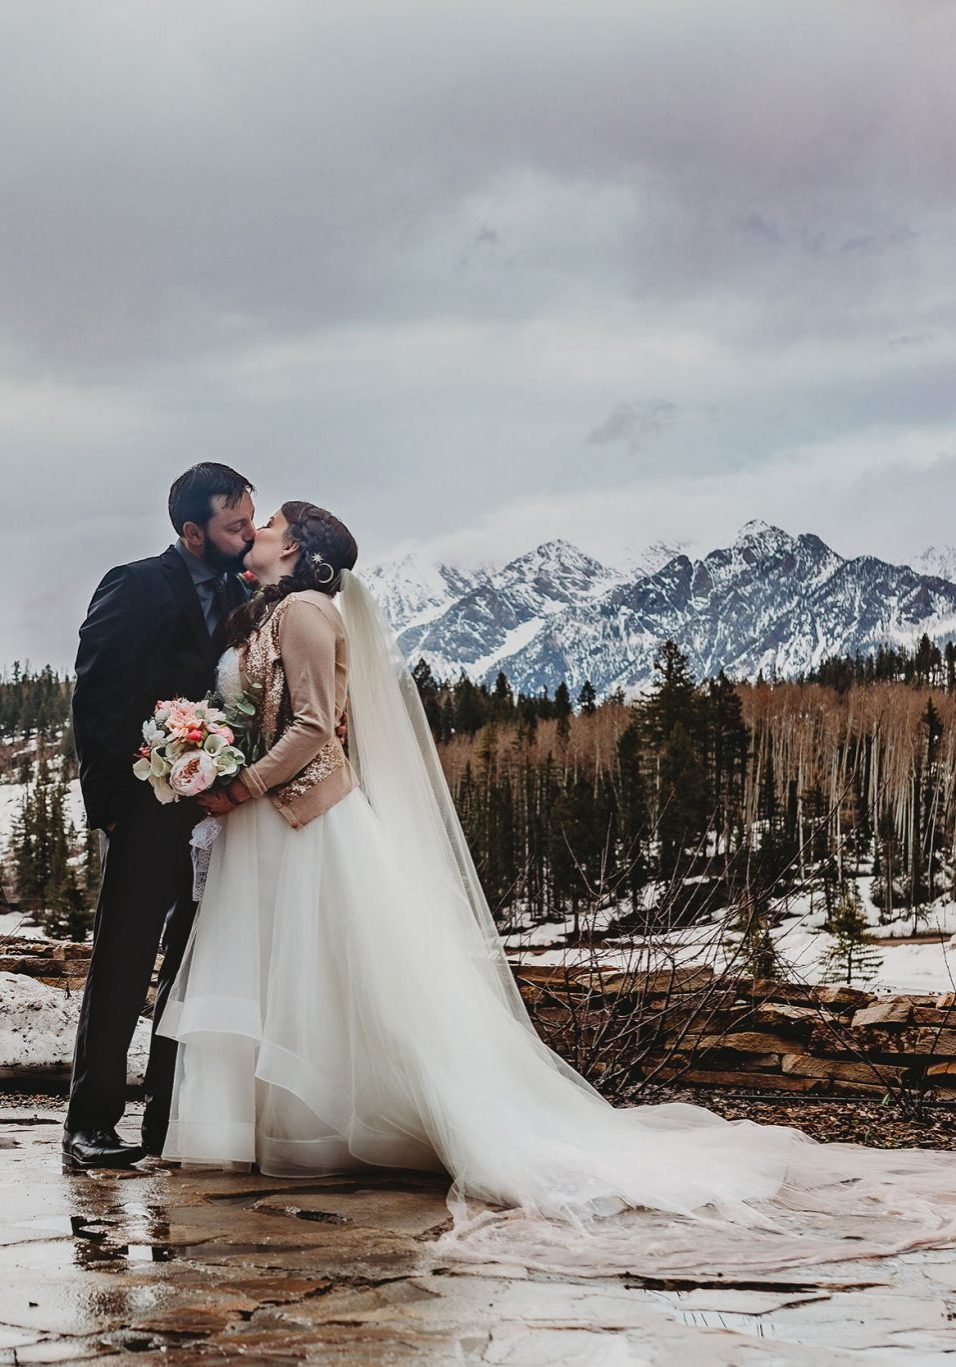 Early Spring wedding in Durango, Colorado